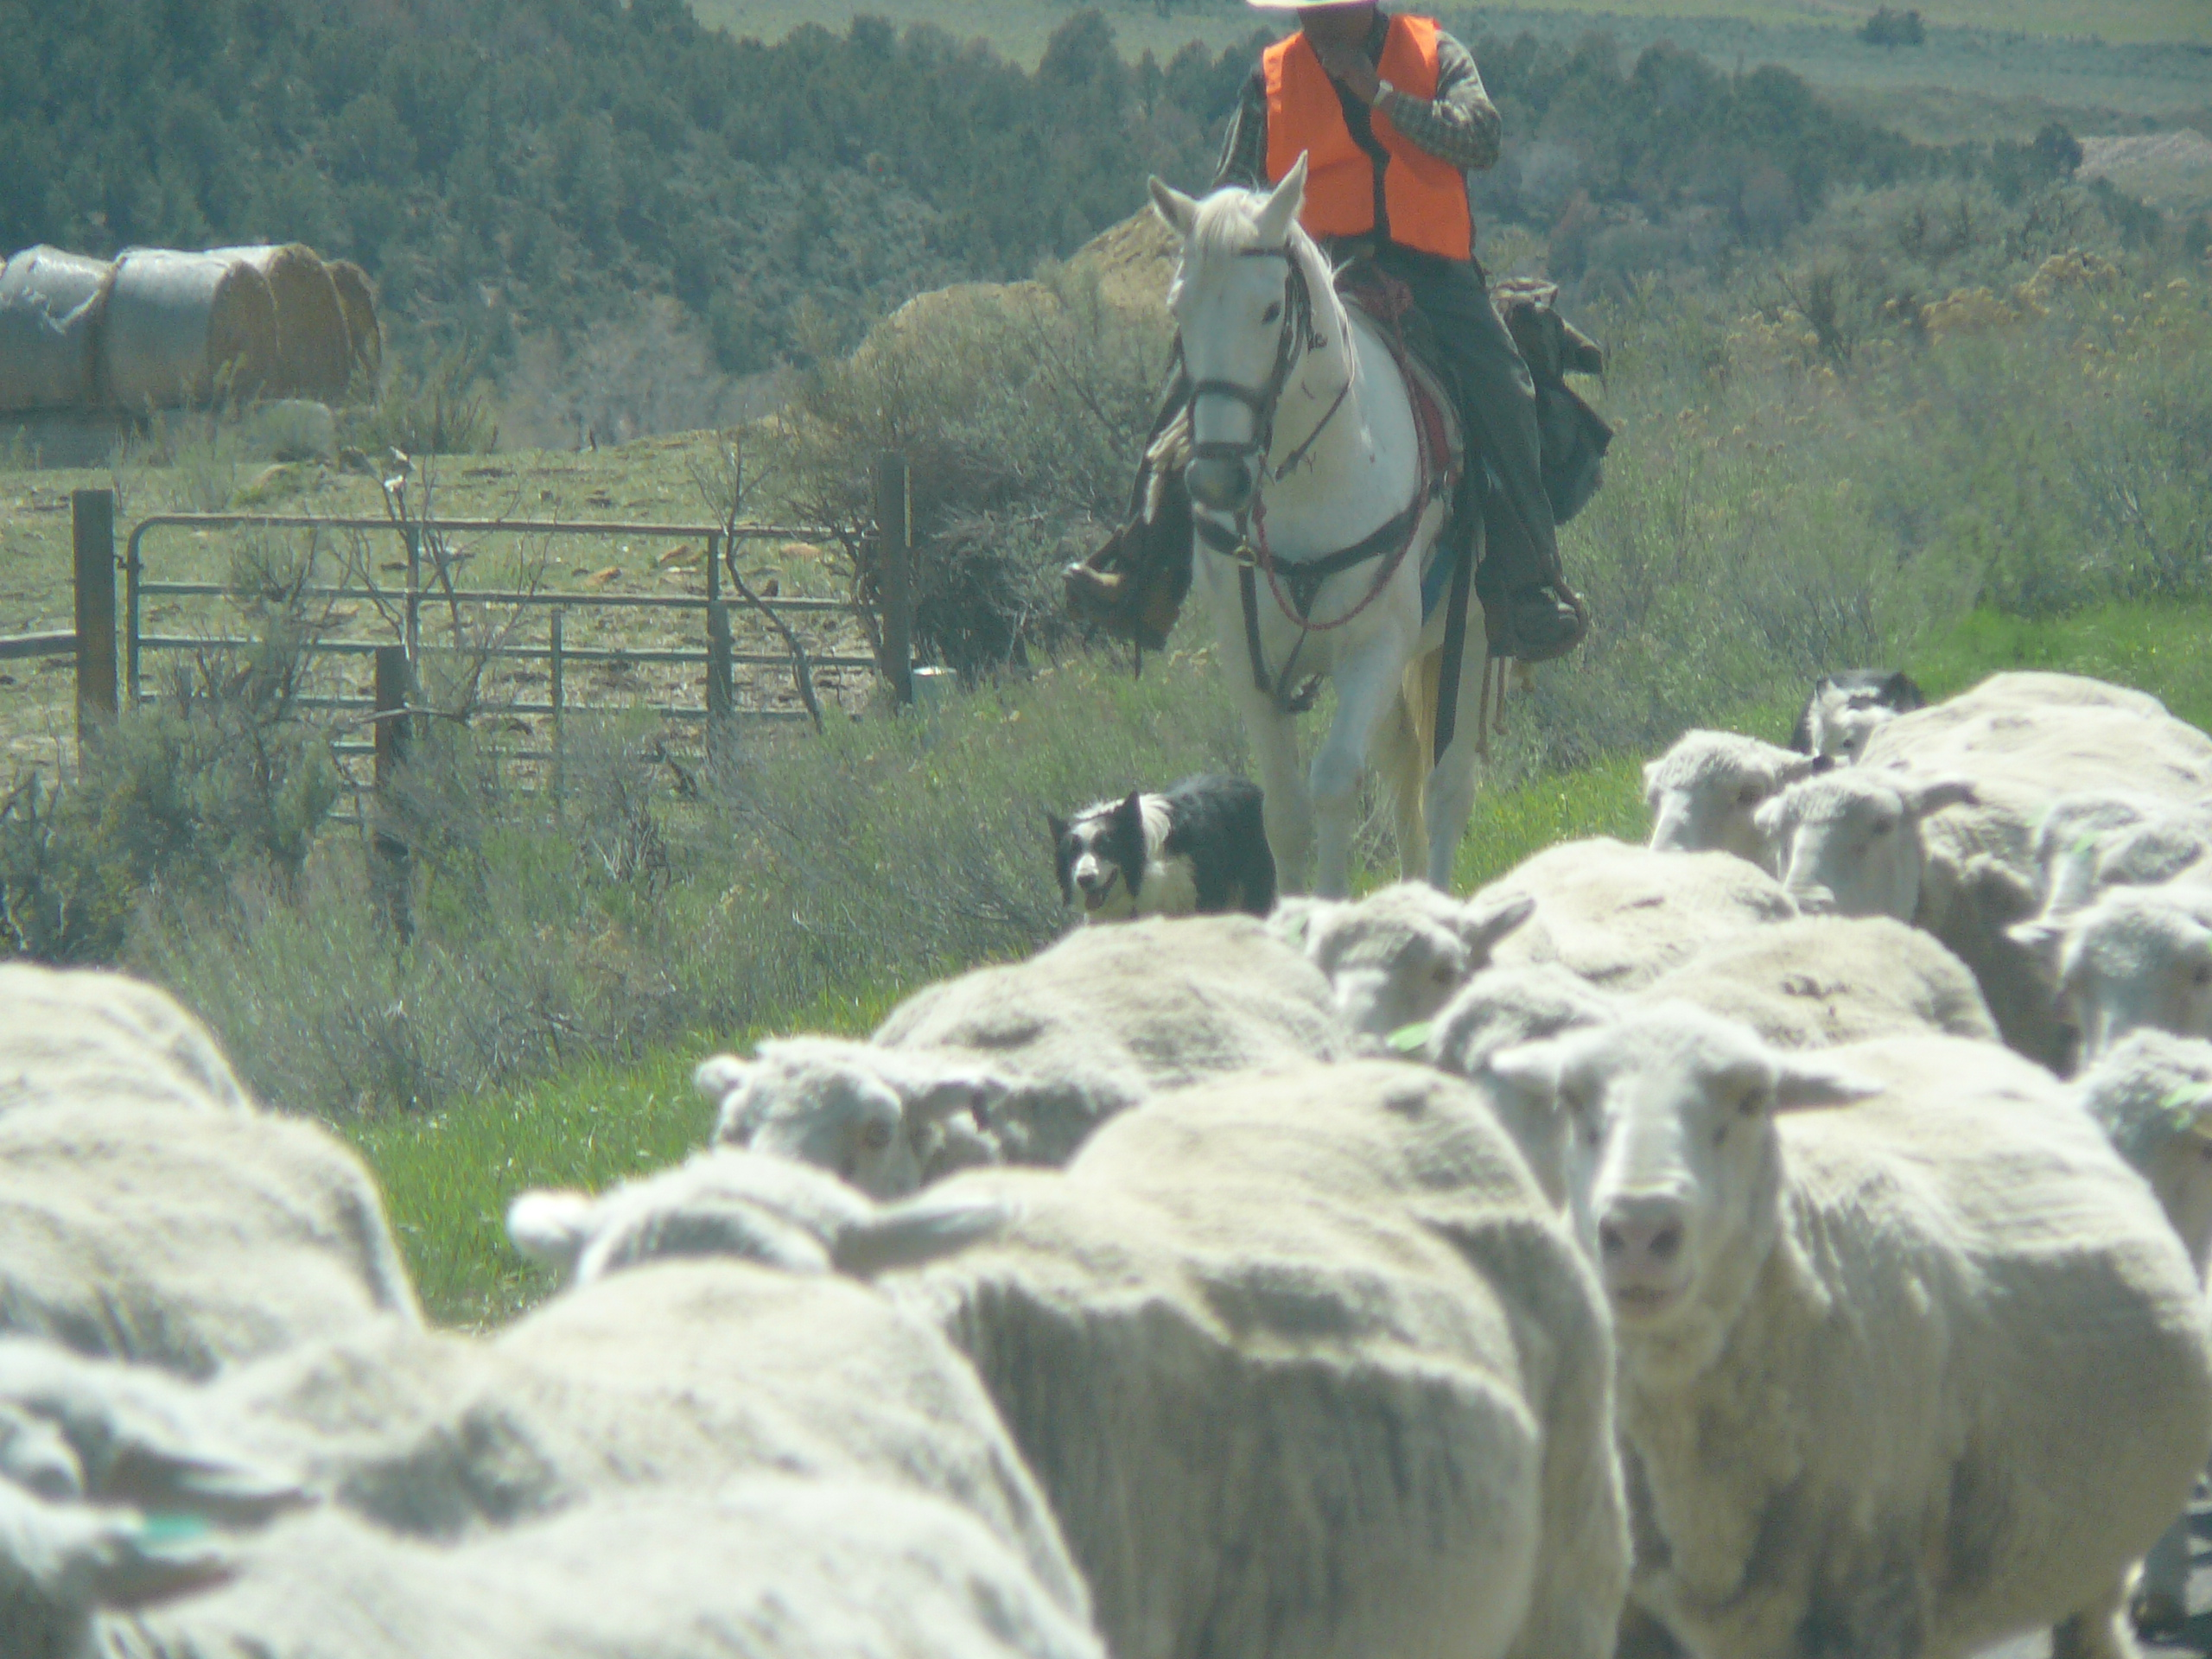 Sheep herder on horseback